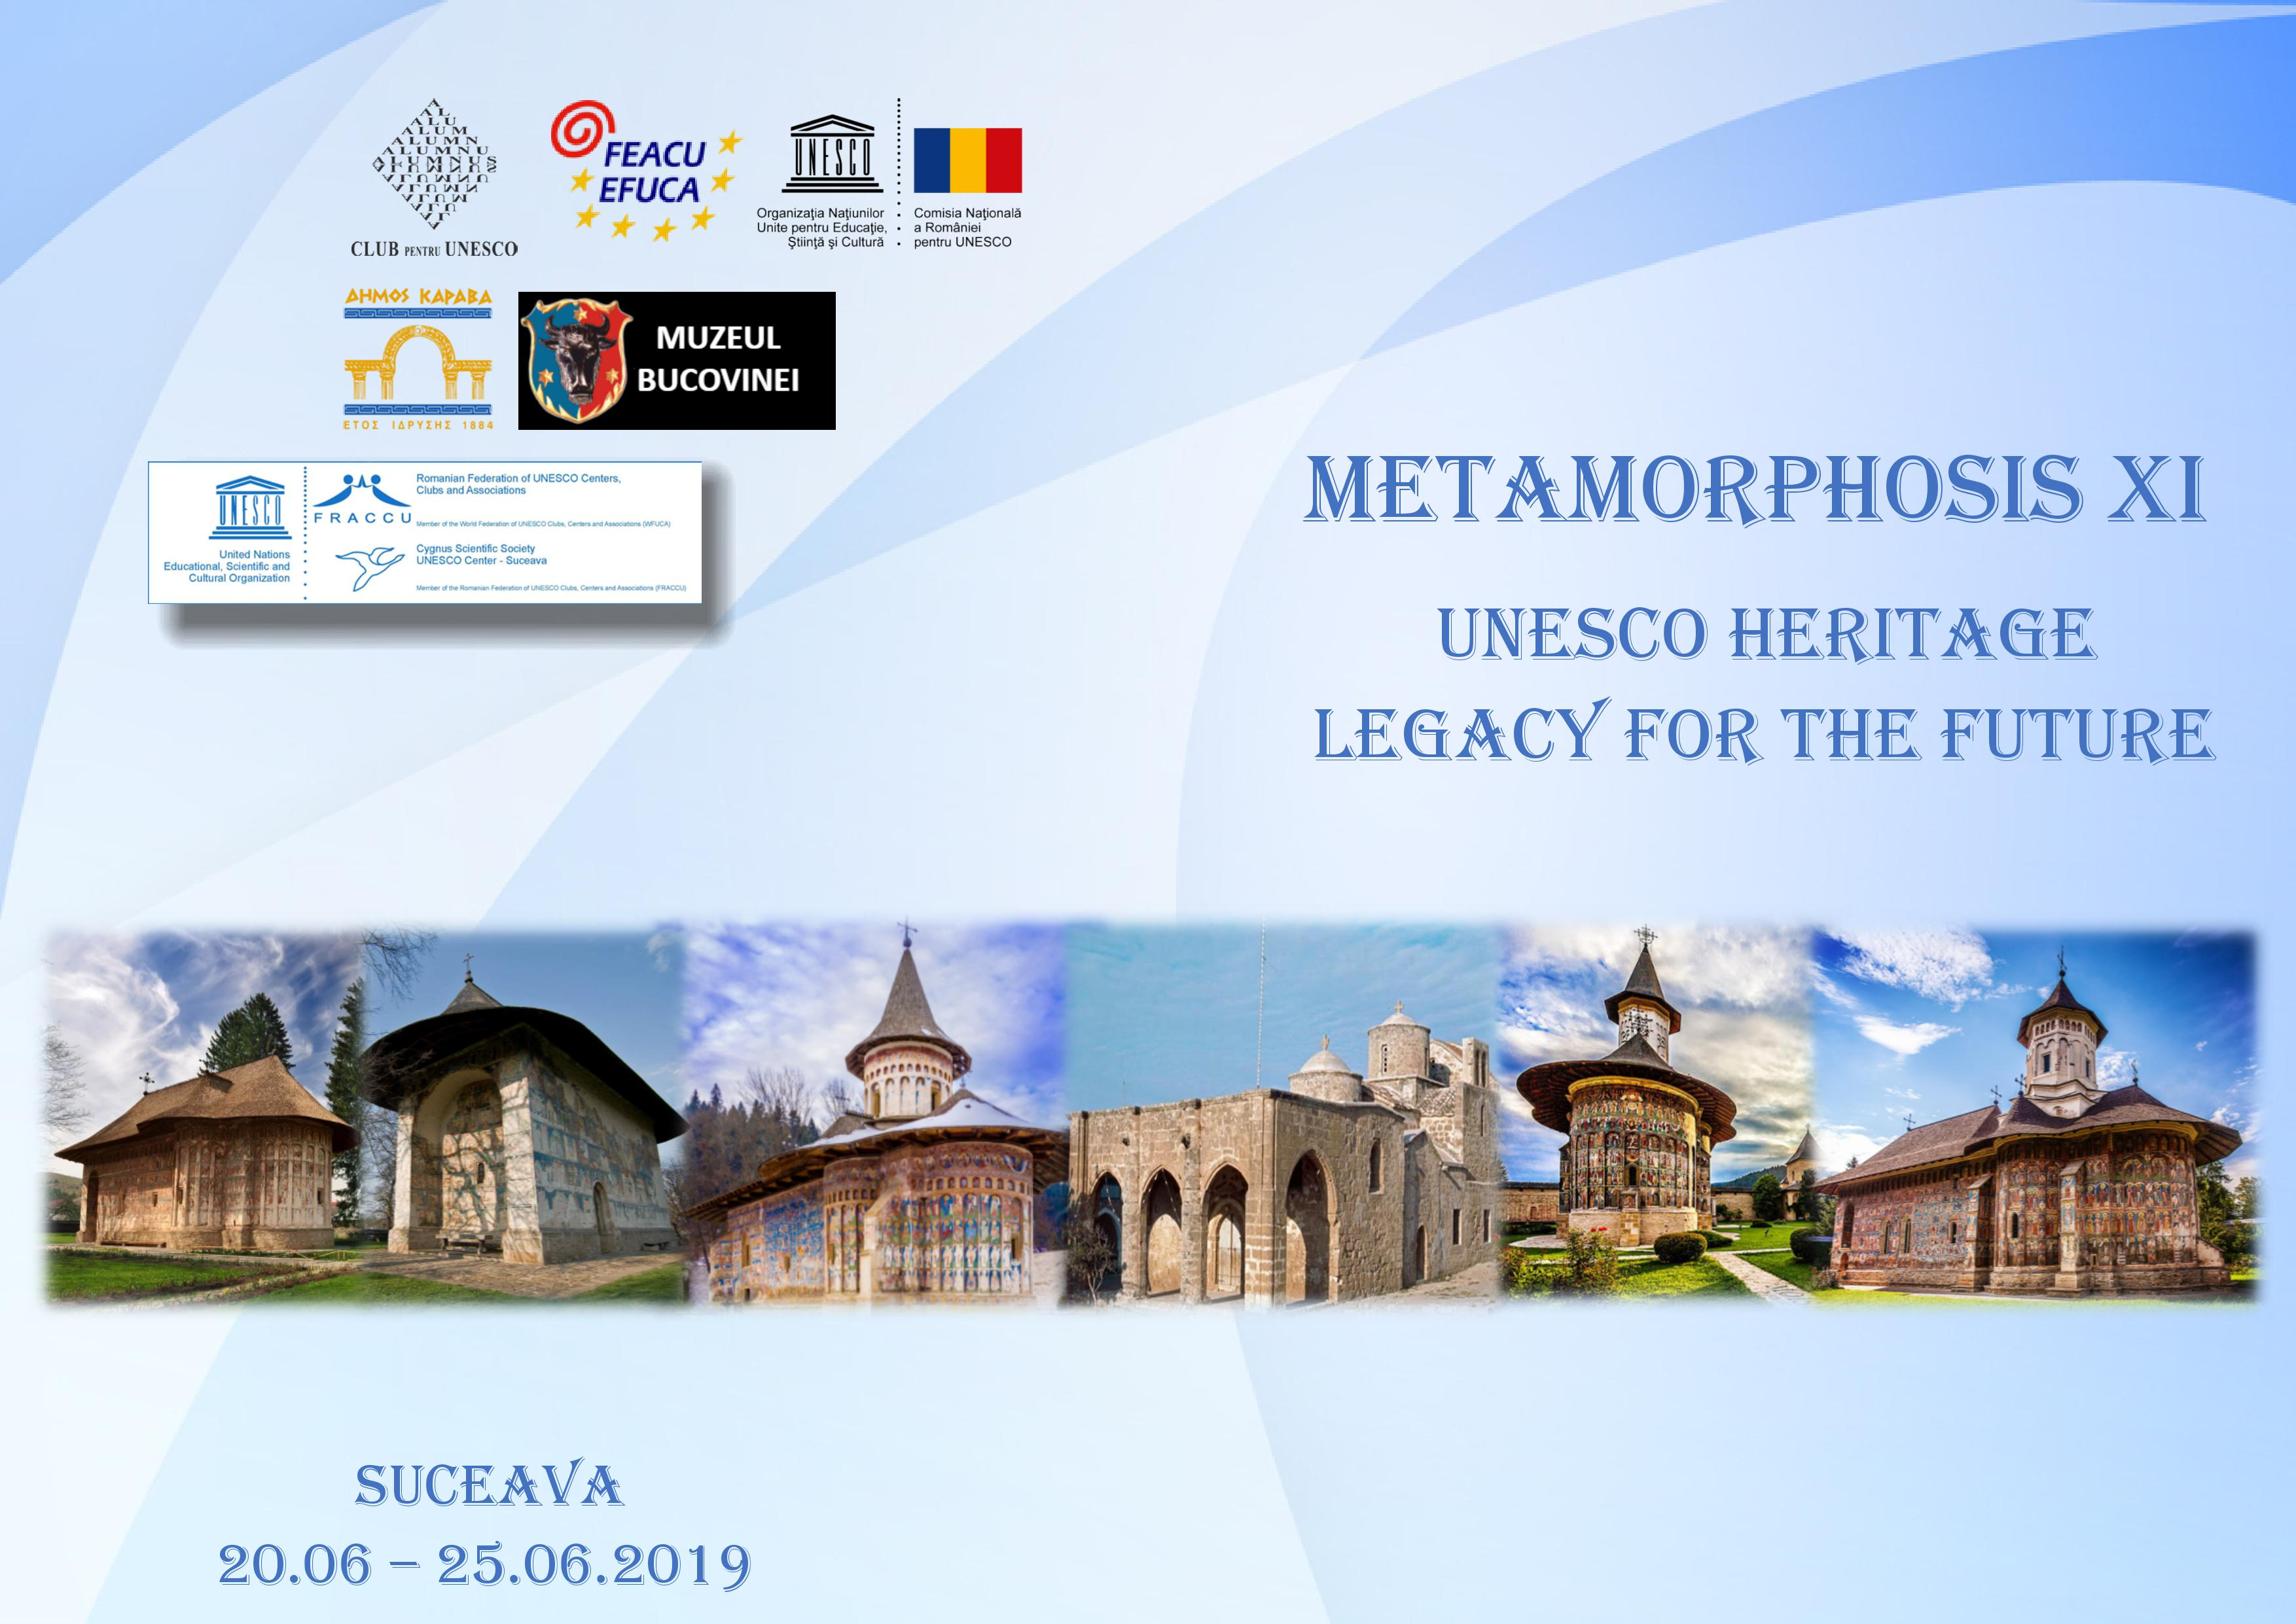 Metamorfoze XI - UNESCO Heritage, Legacy for the Future